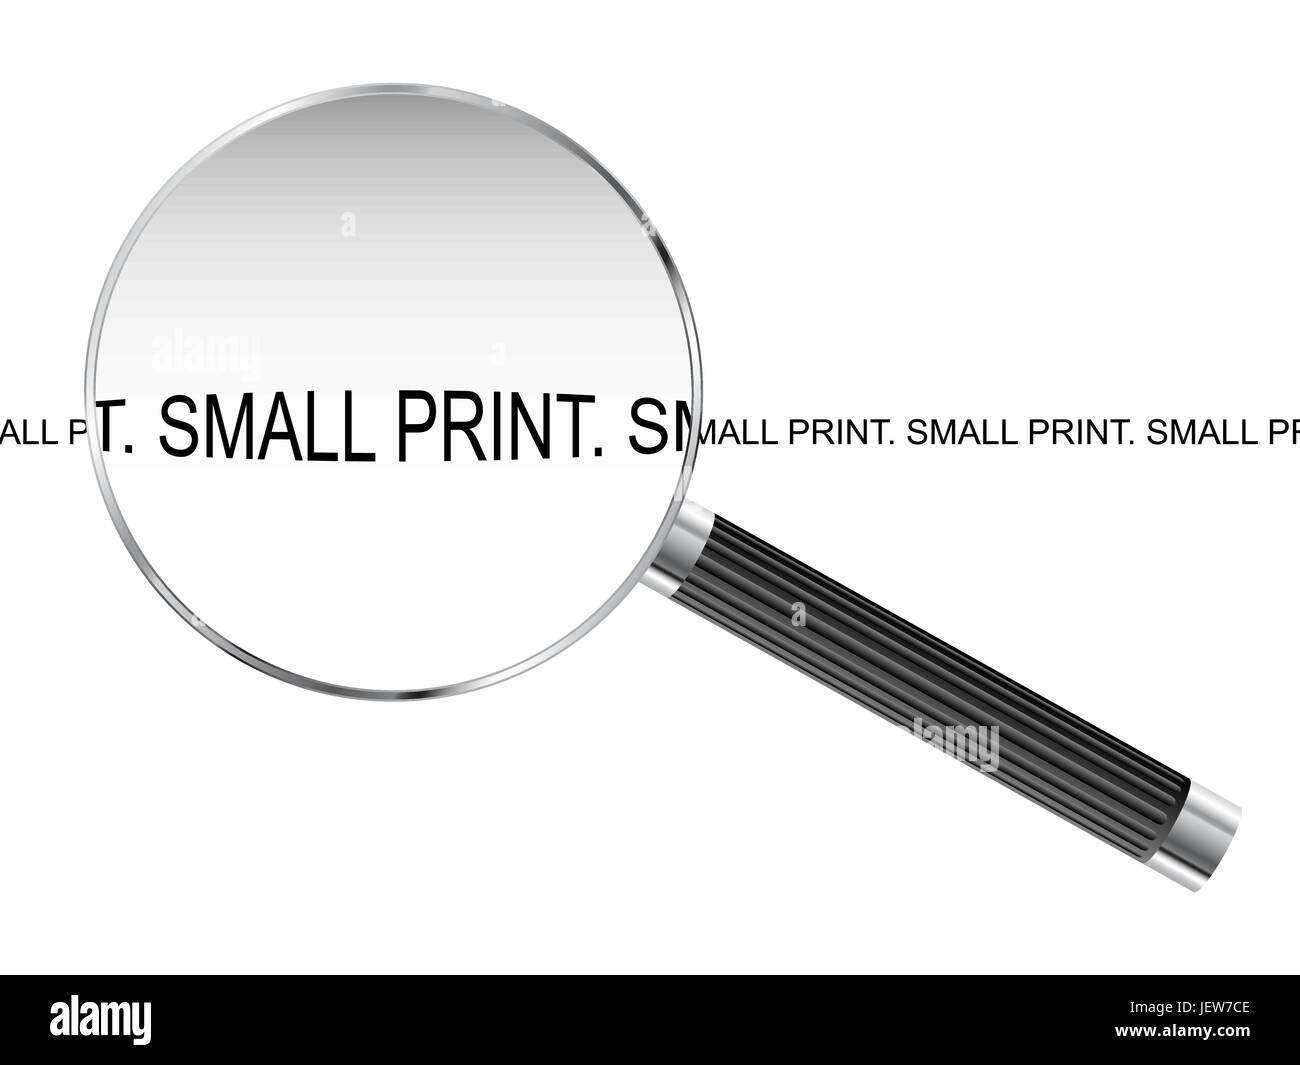 small, tiny, little, short, spy, print, document, espionage, spying, legal, - Stock Vector